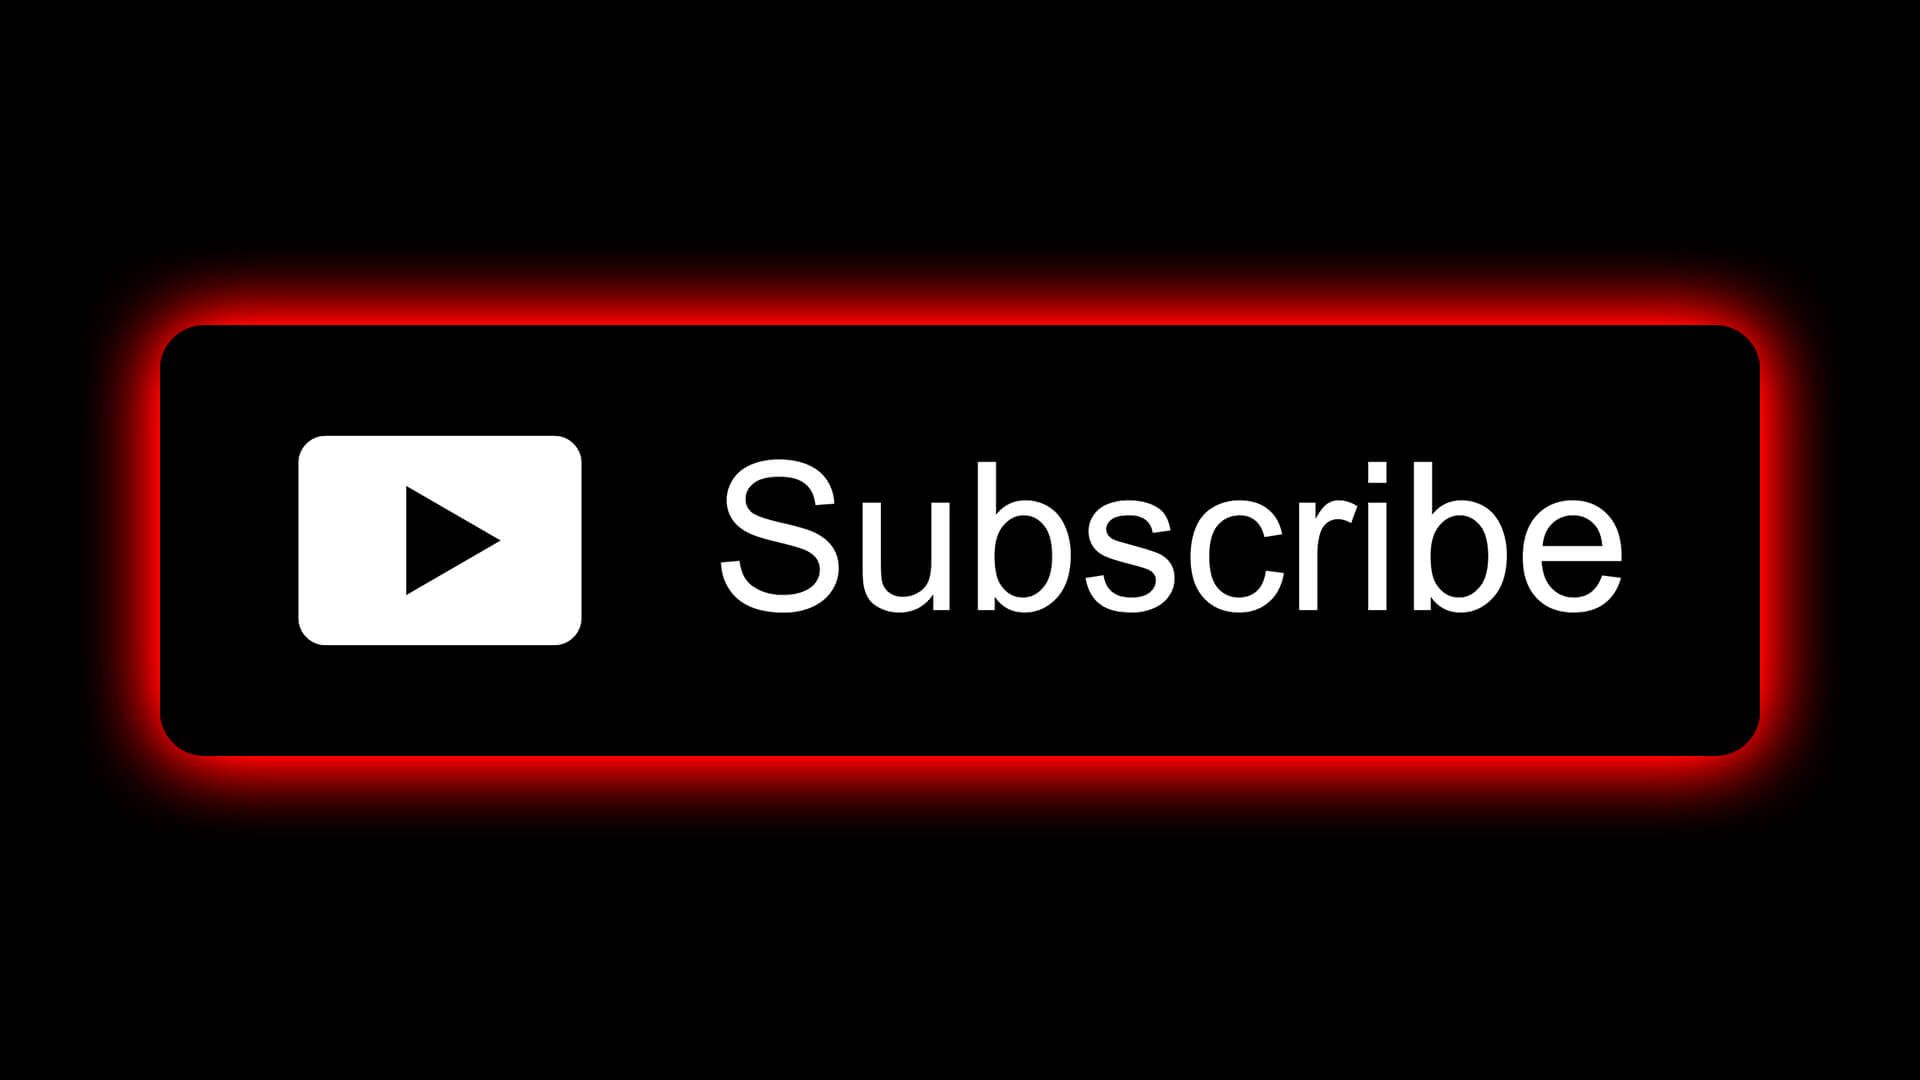 Subscribe Youtube Wallpapers Wallpaper Cave